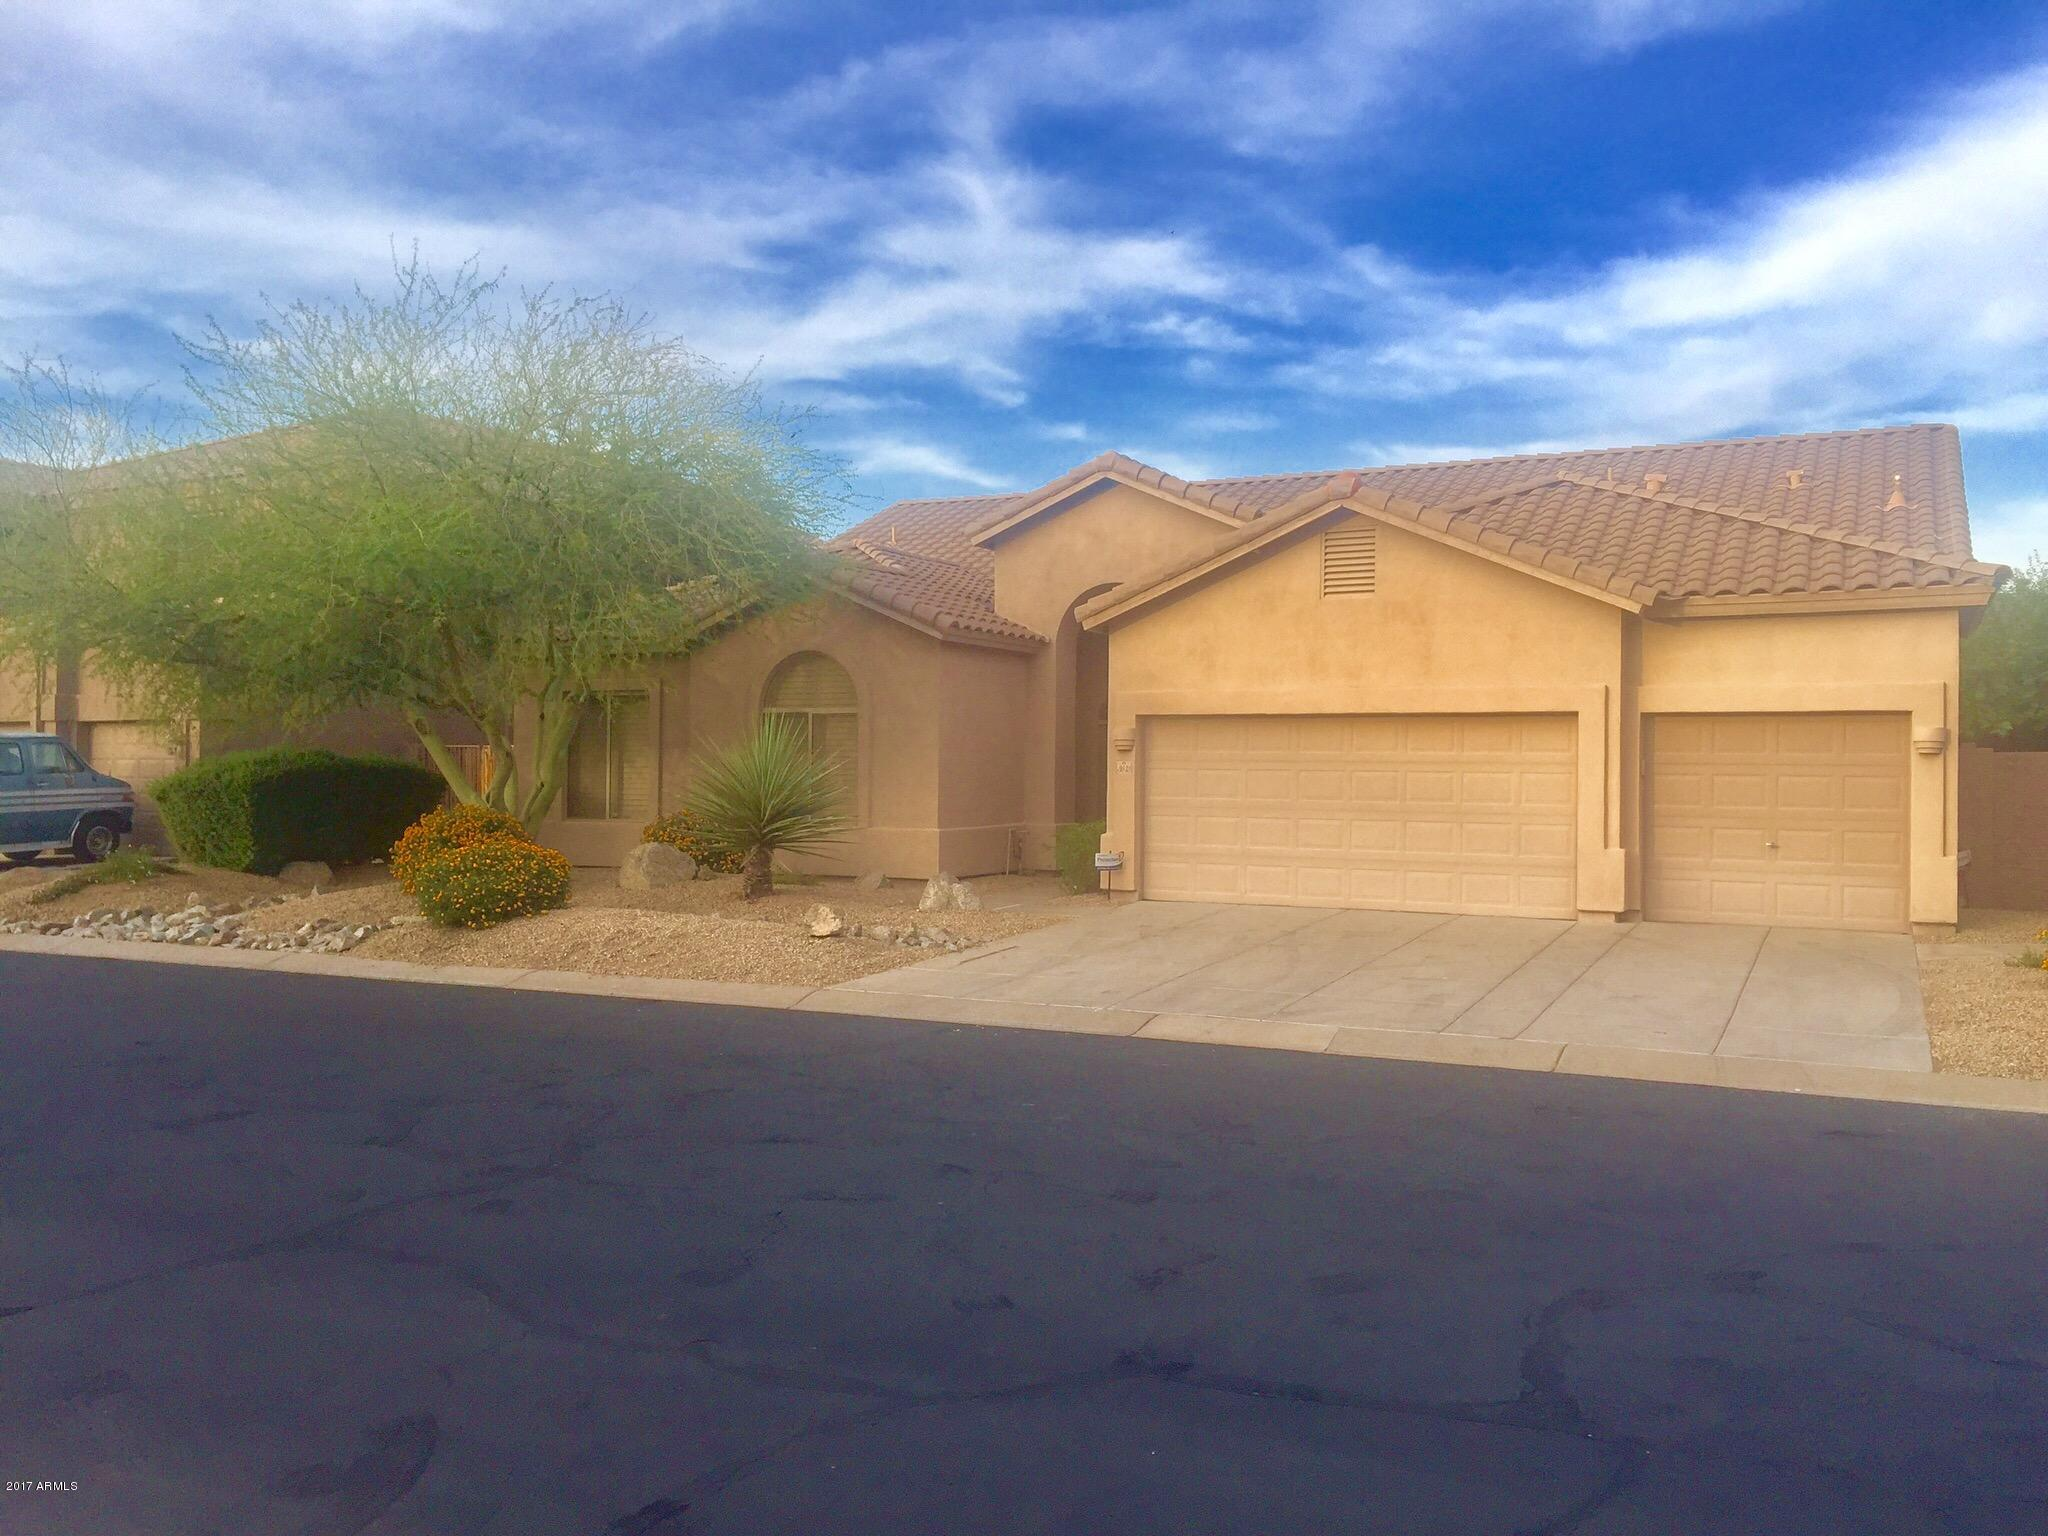 Photo of 3643 N EAGLE CANYON --, Mesa, AZ 85207